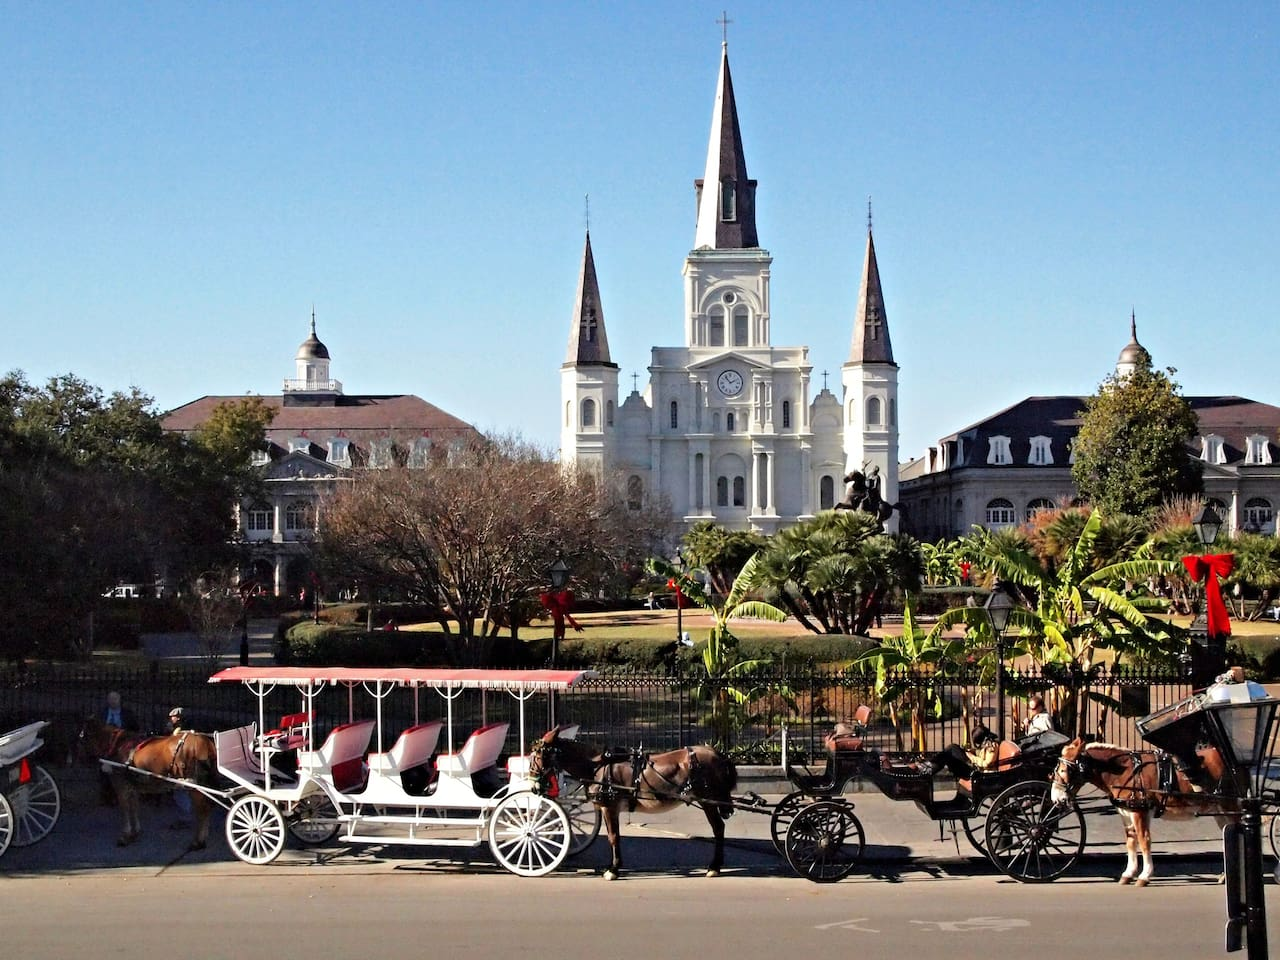 This home is accessible for walking to the French Quarters for all the attractions such as Jackson Square. Bourbon St. also turns into my street after crossing Esplanade Ave. Staying at this home will put you in the heart of everything!